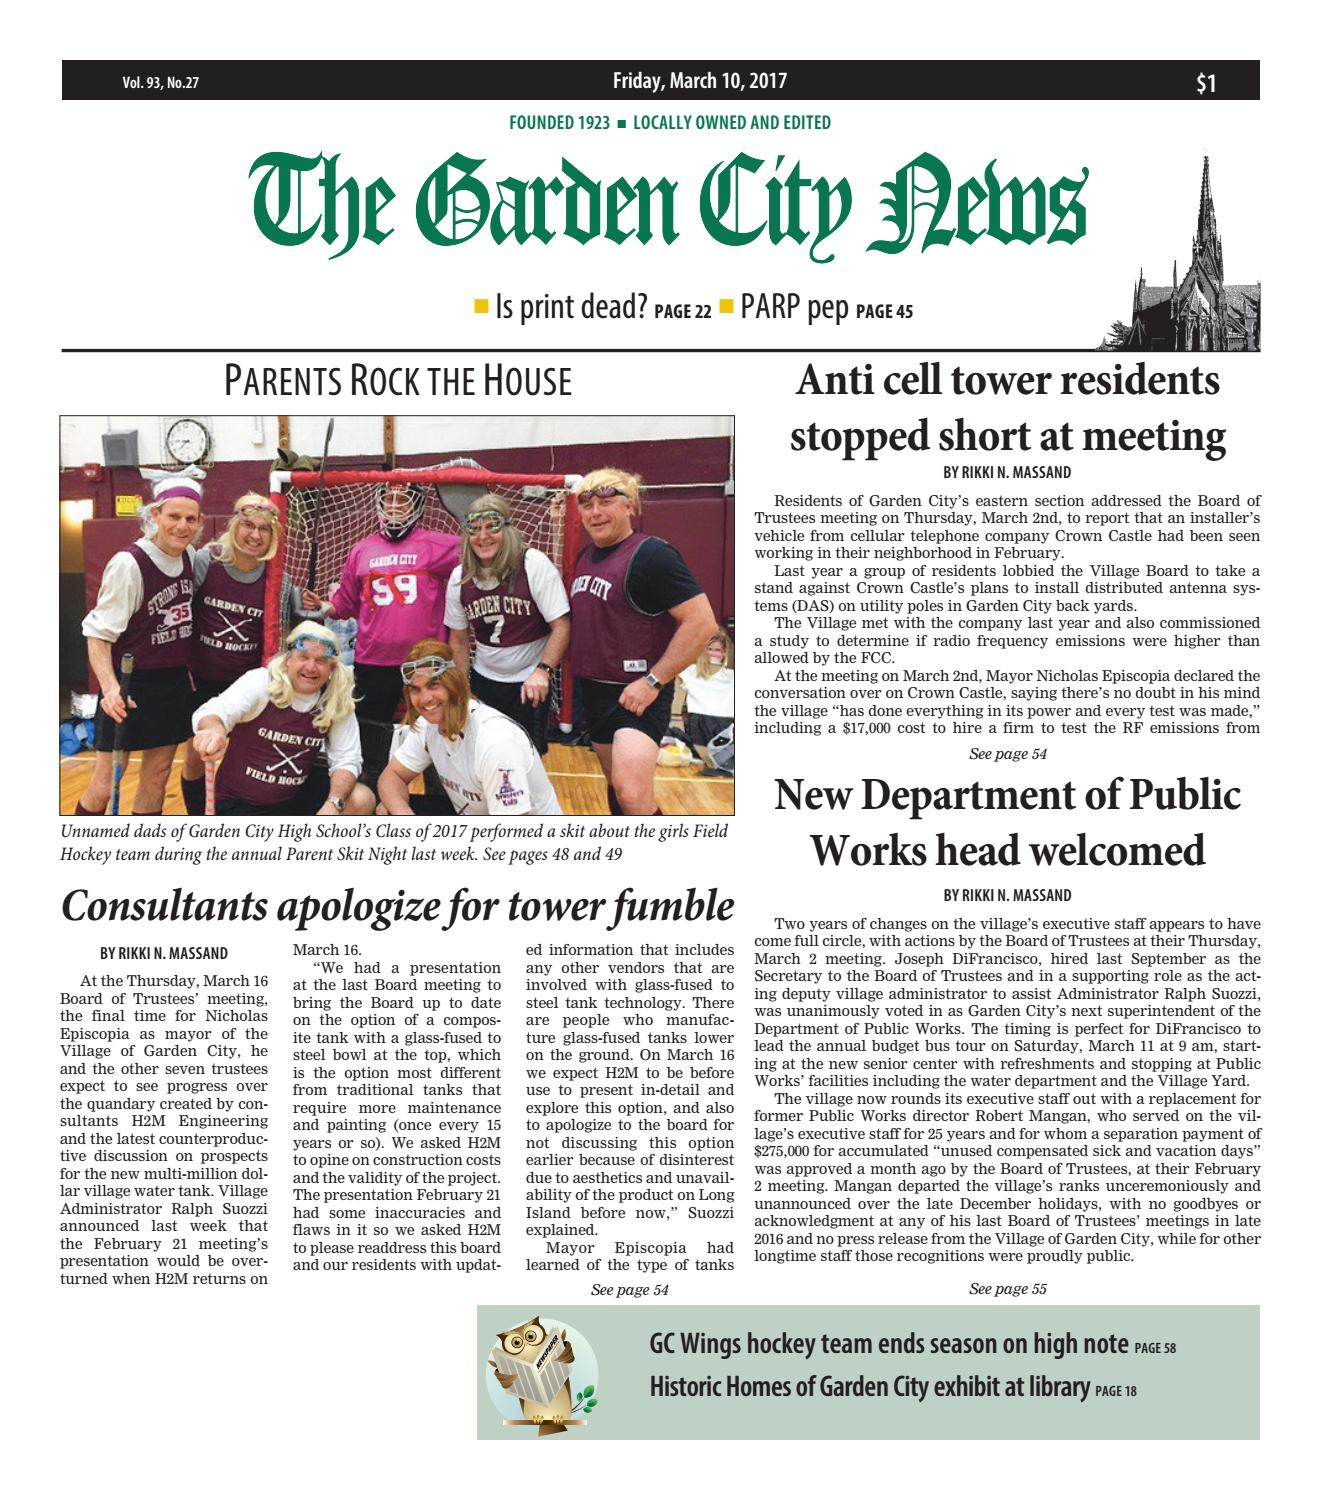 the garden city news 03 10 2017 by litmor publishing issuu - Fairchild Funeral Home Garden City